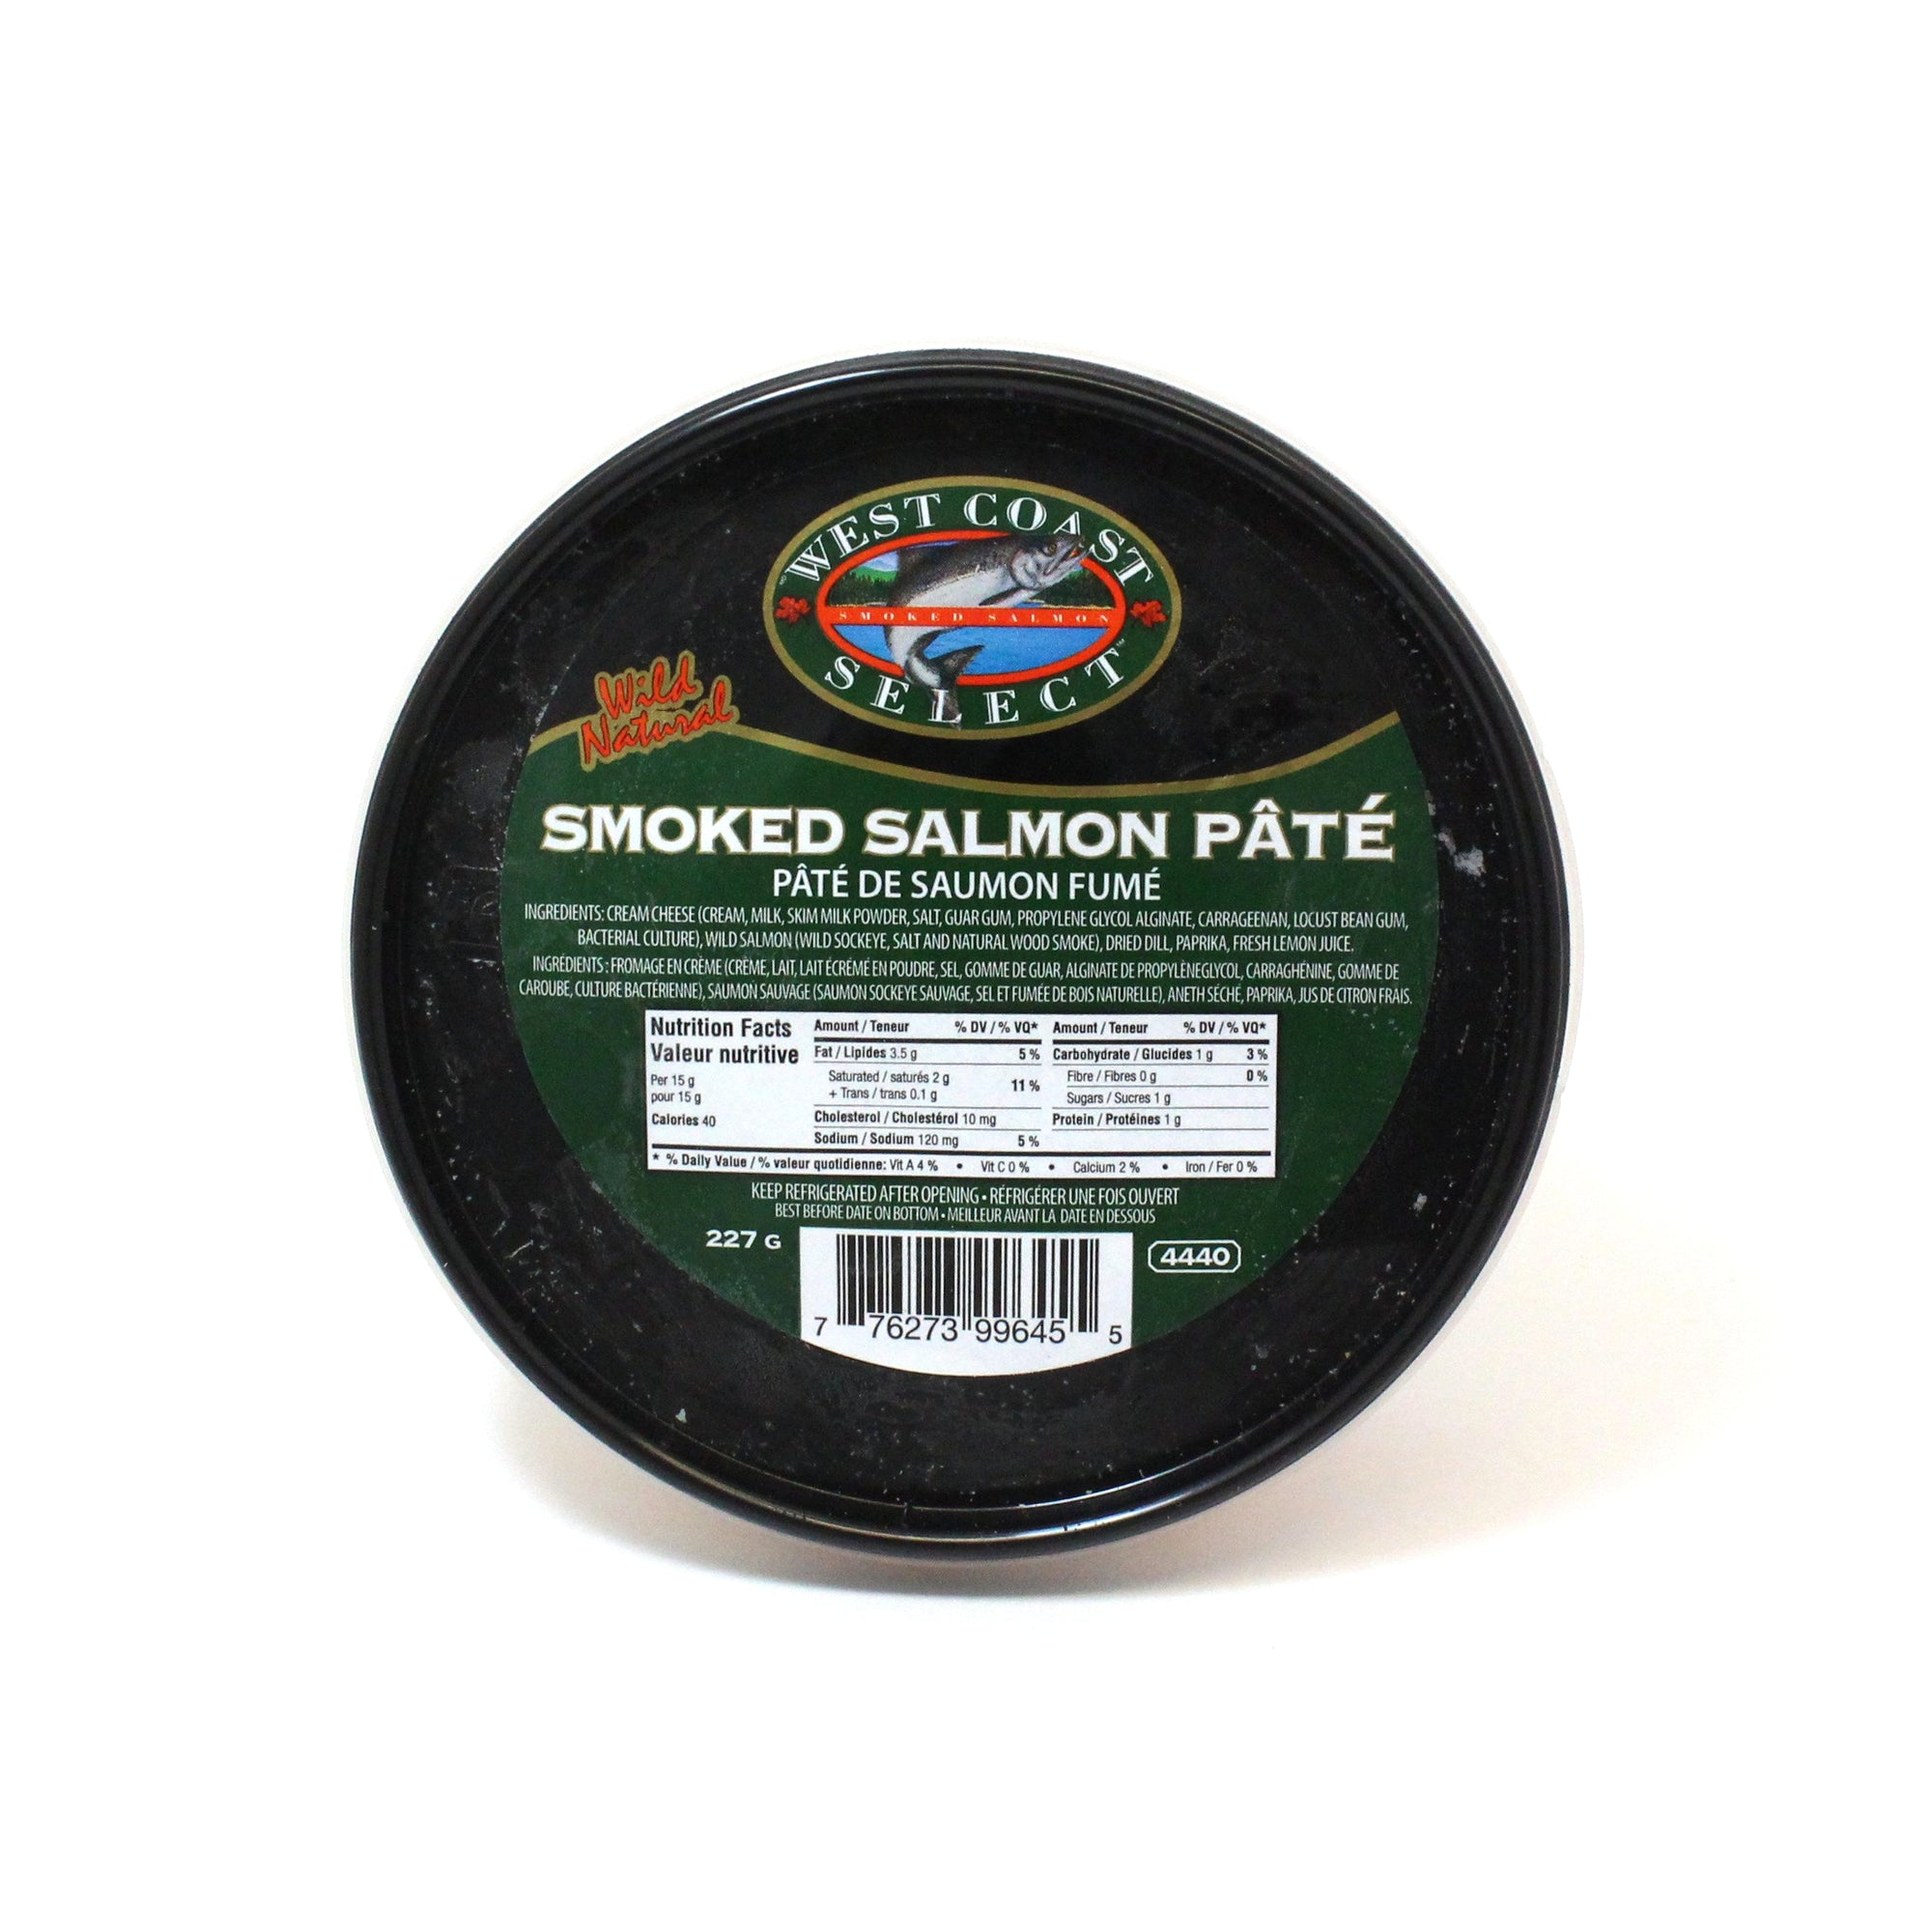 West Coast Select Smoked Salmon Pate